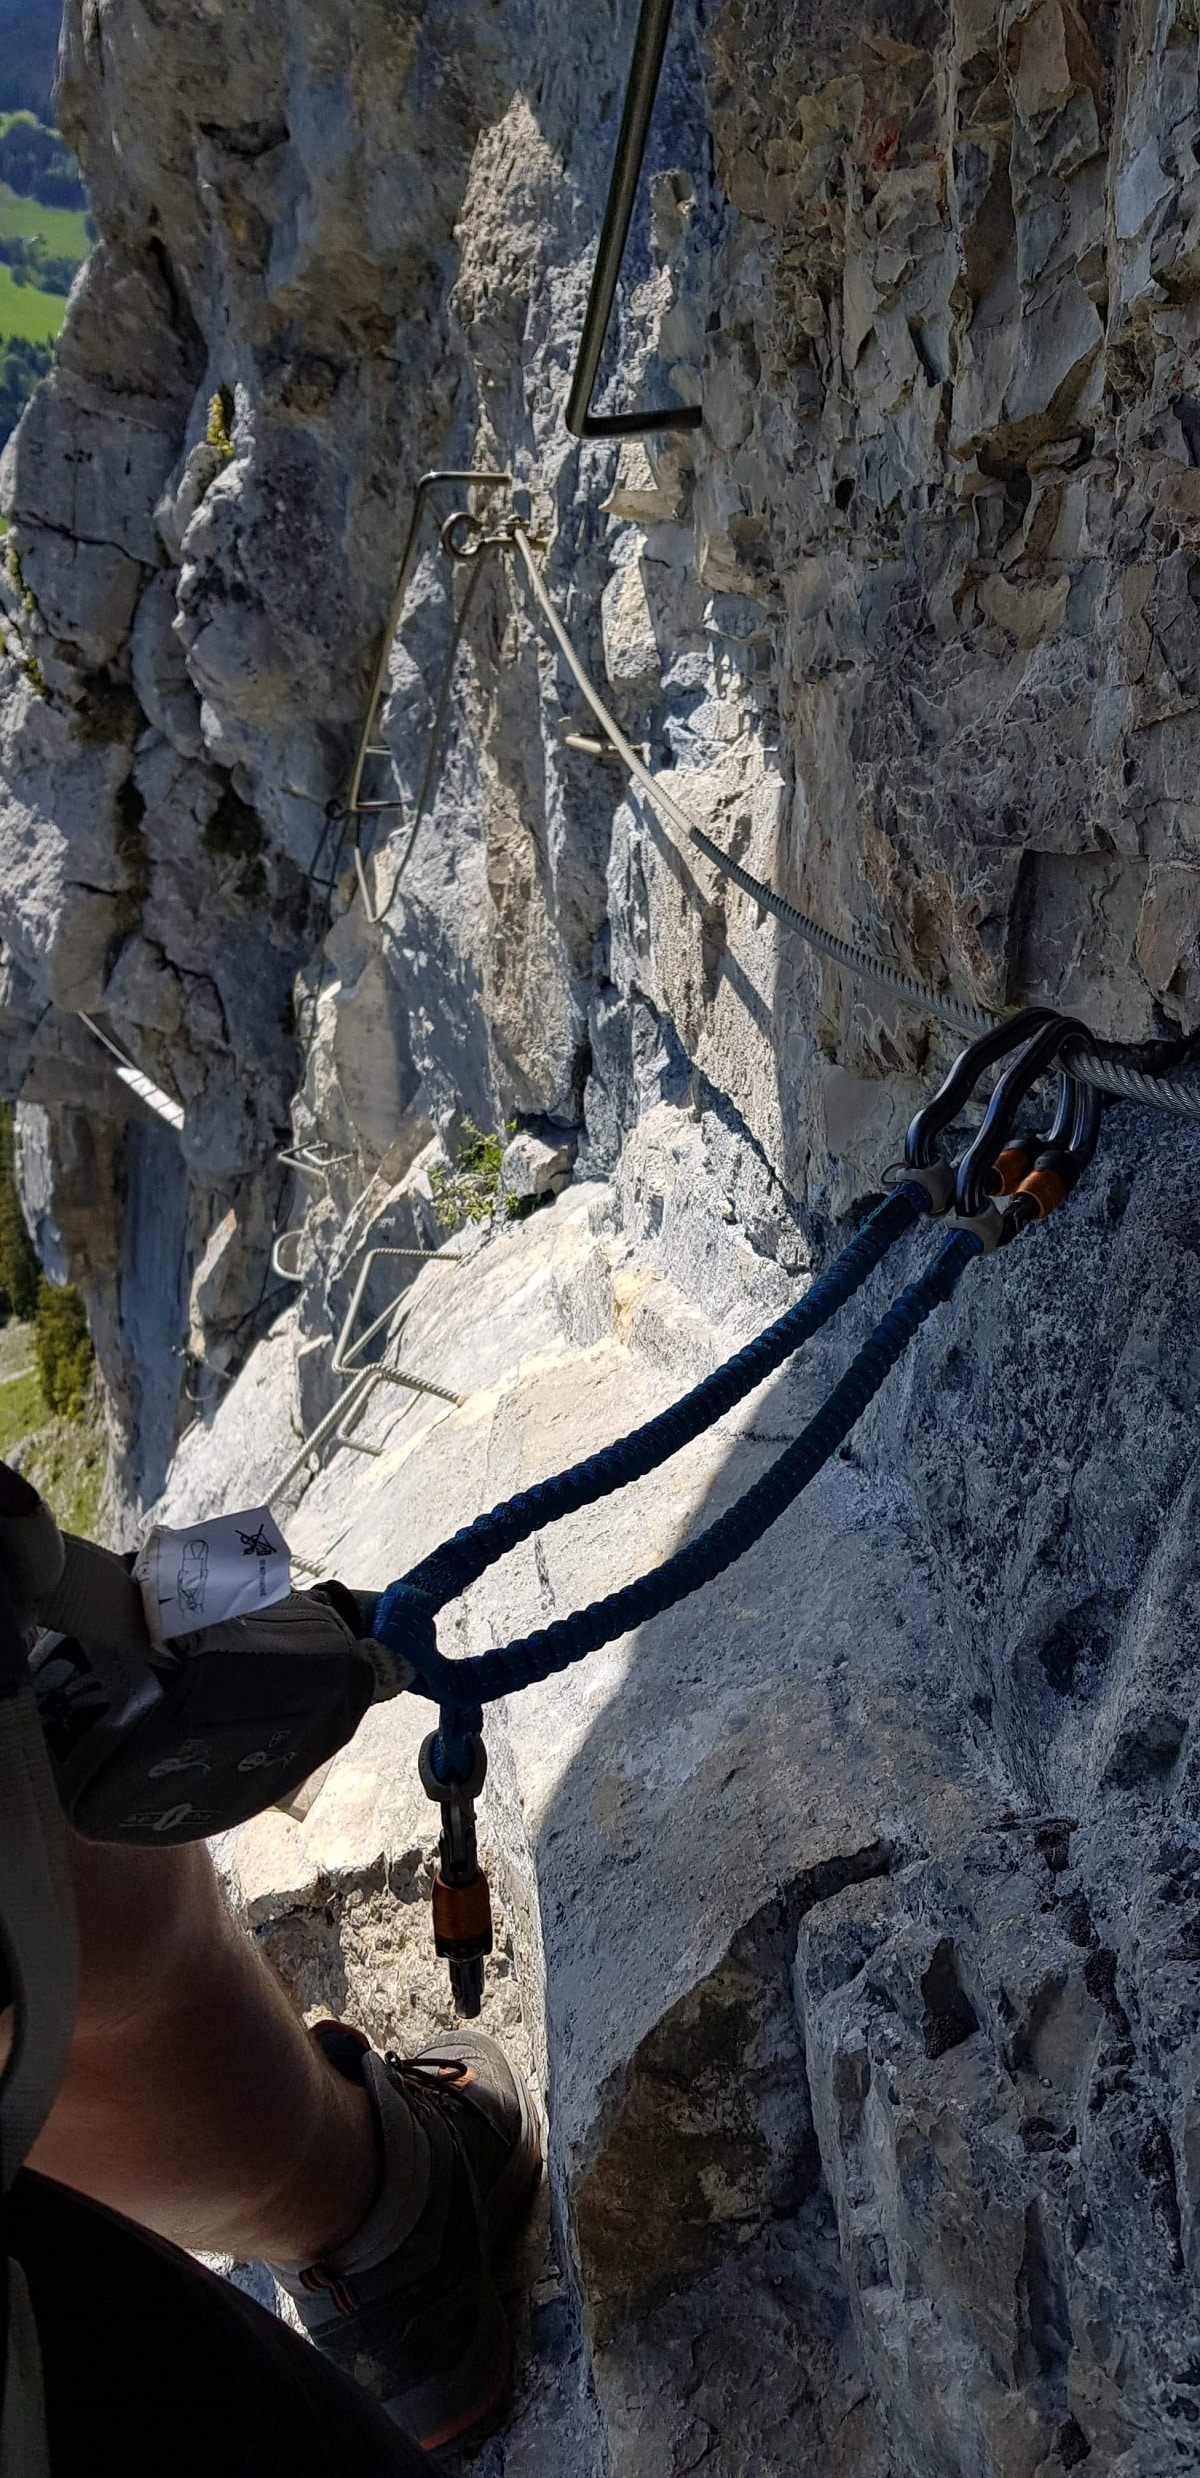 via ferrata yves pollet